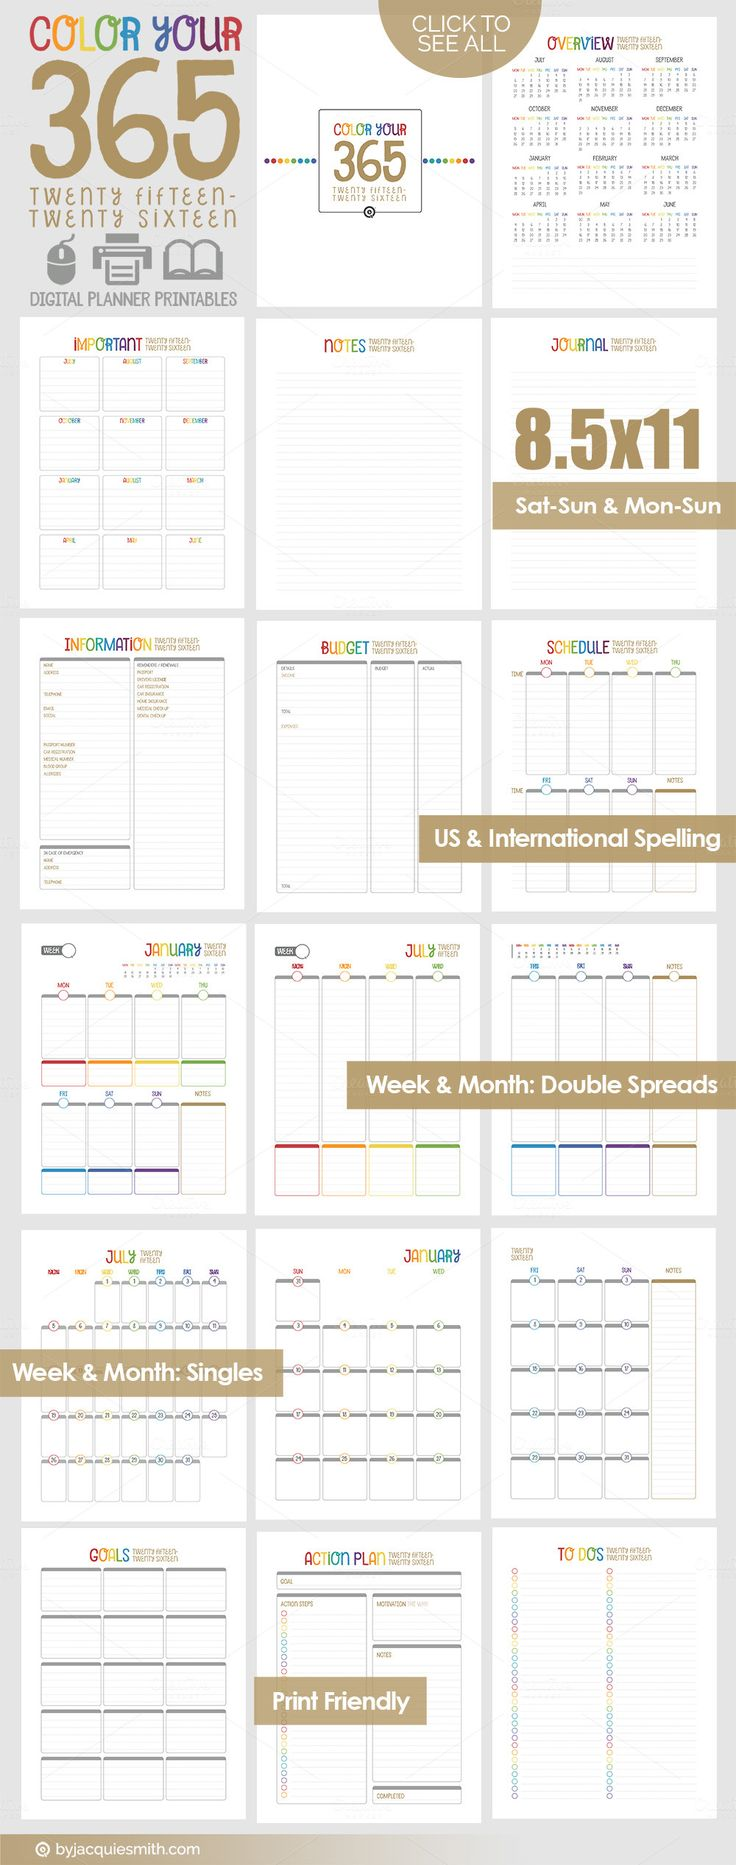 Printable Planner: 2015-2016 CY365 by Jacqui E Smith on Creative Market